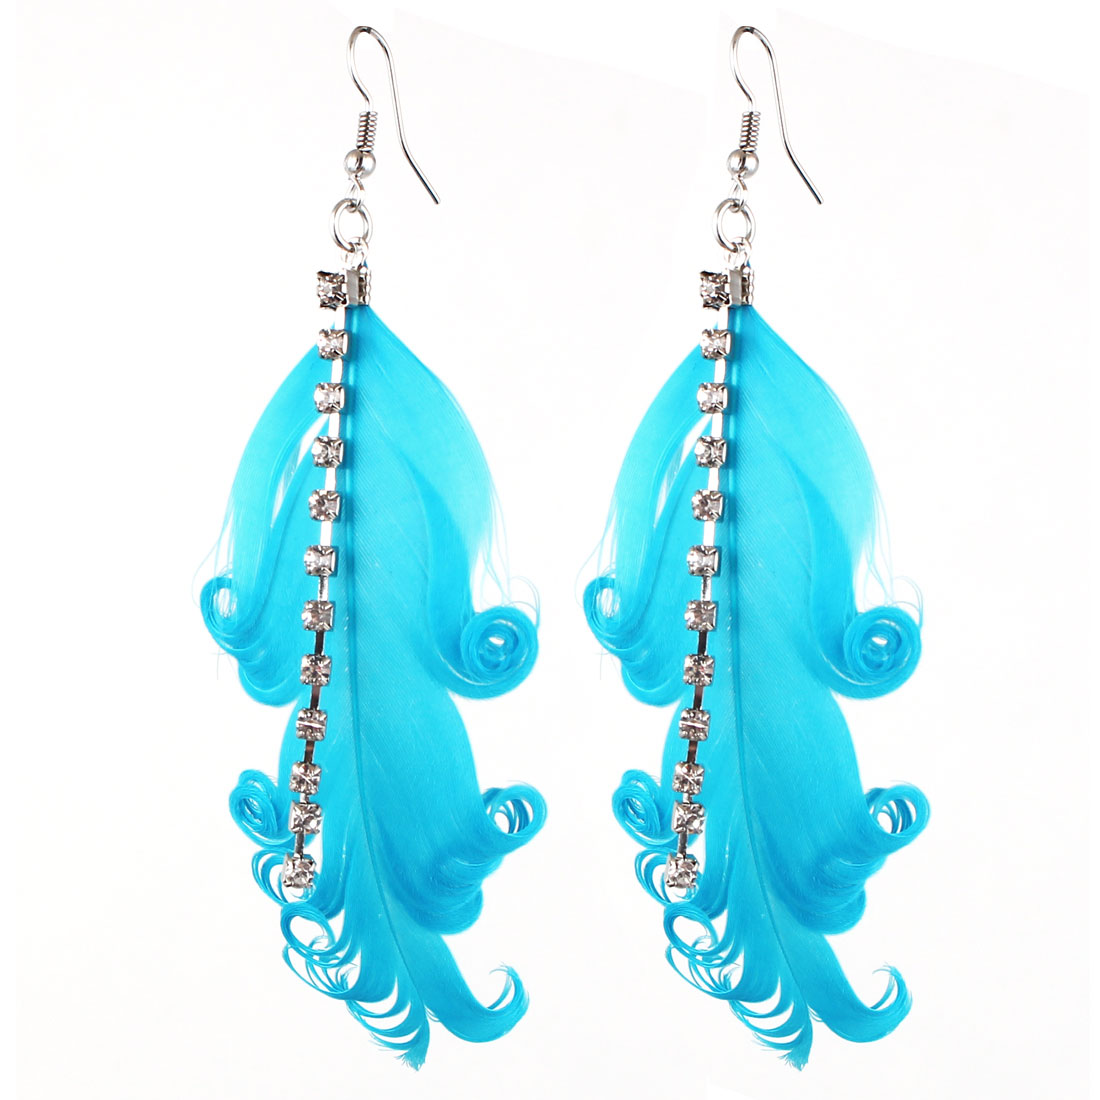 Lady Charm Fashion Jewelry Rhinestone Feather Long Dangle Earrings Pair Blue